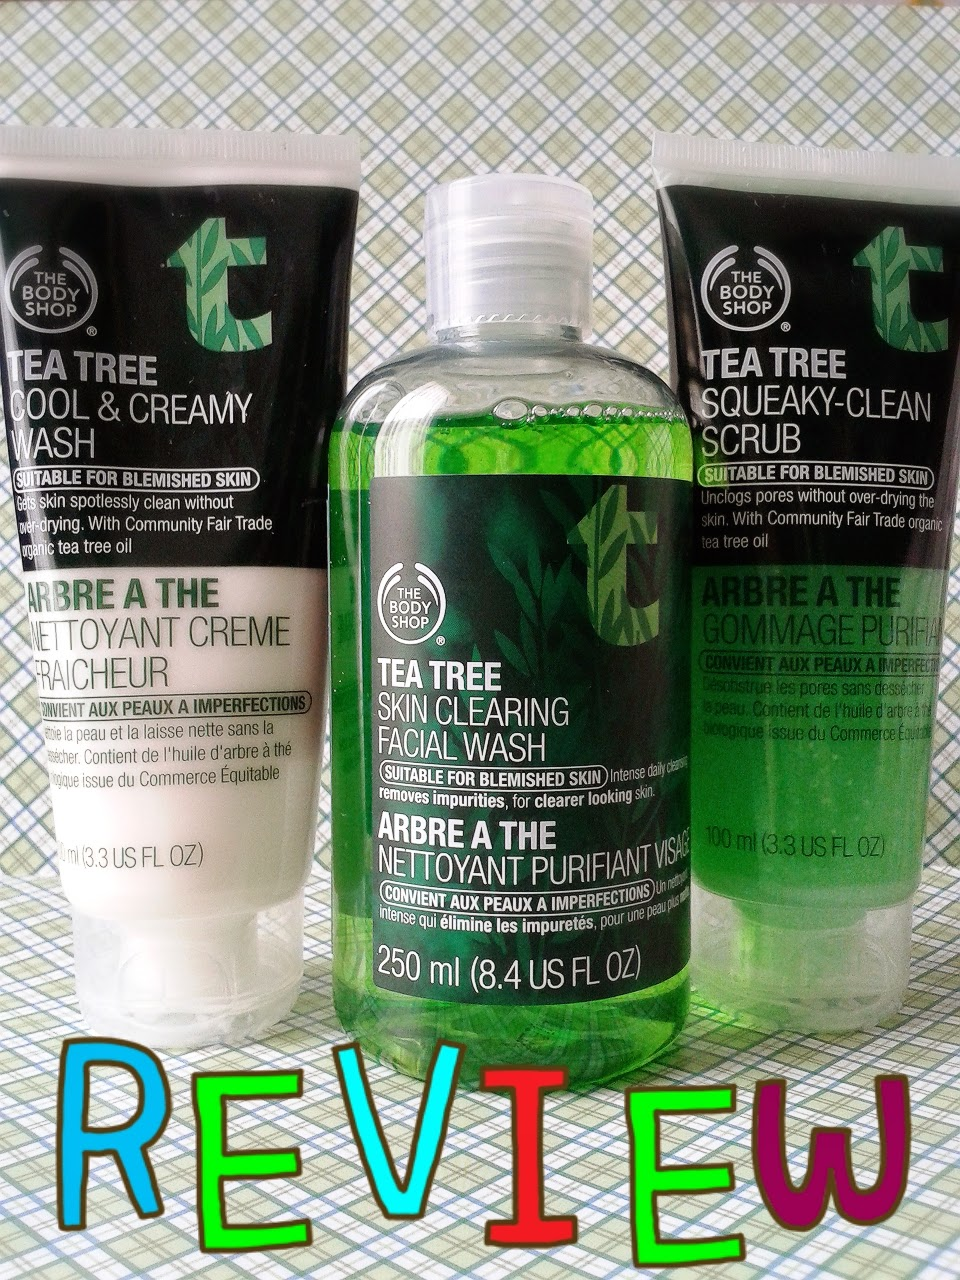 Review The Body Shop Tea Tree Squeaky Clean Scrub | 我的美丽日记